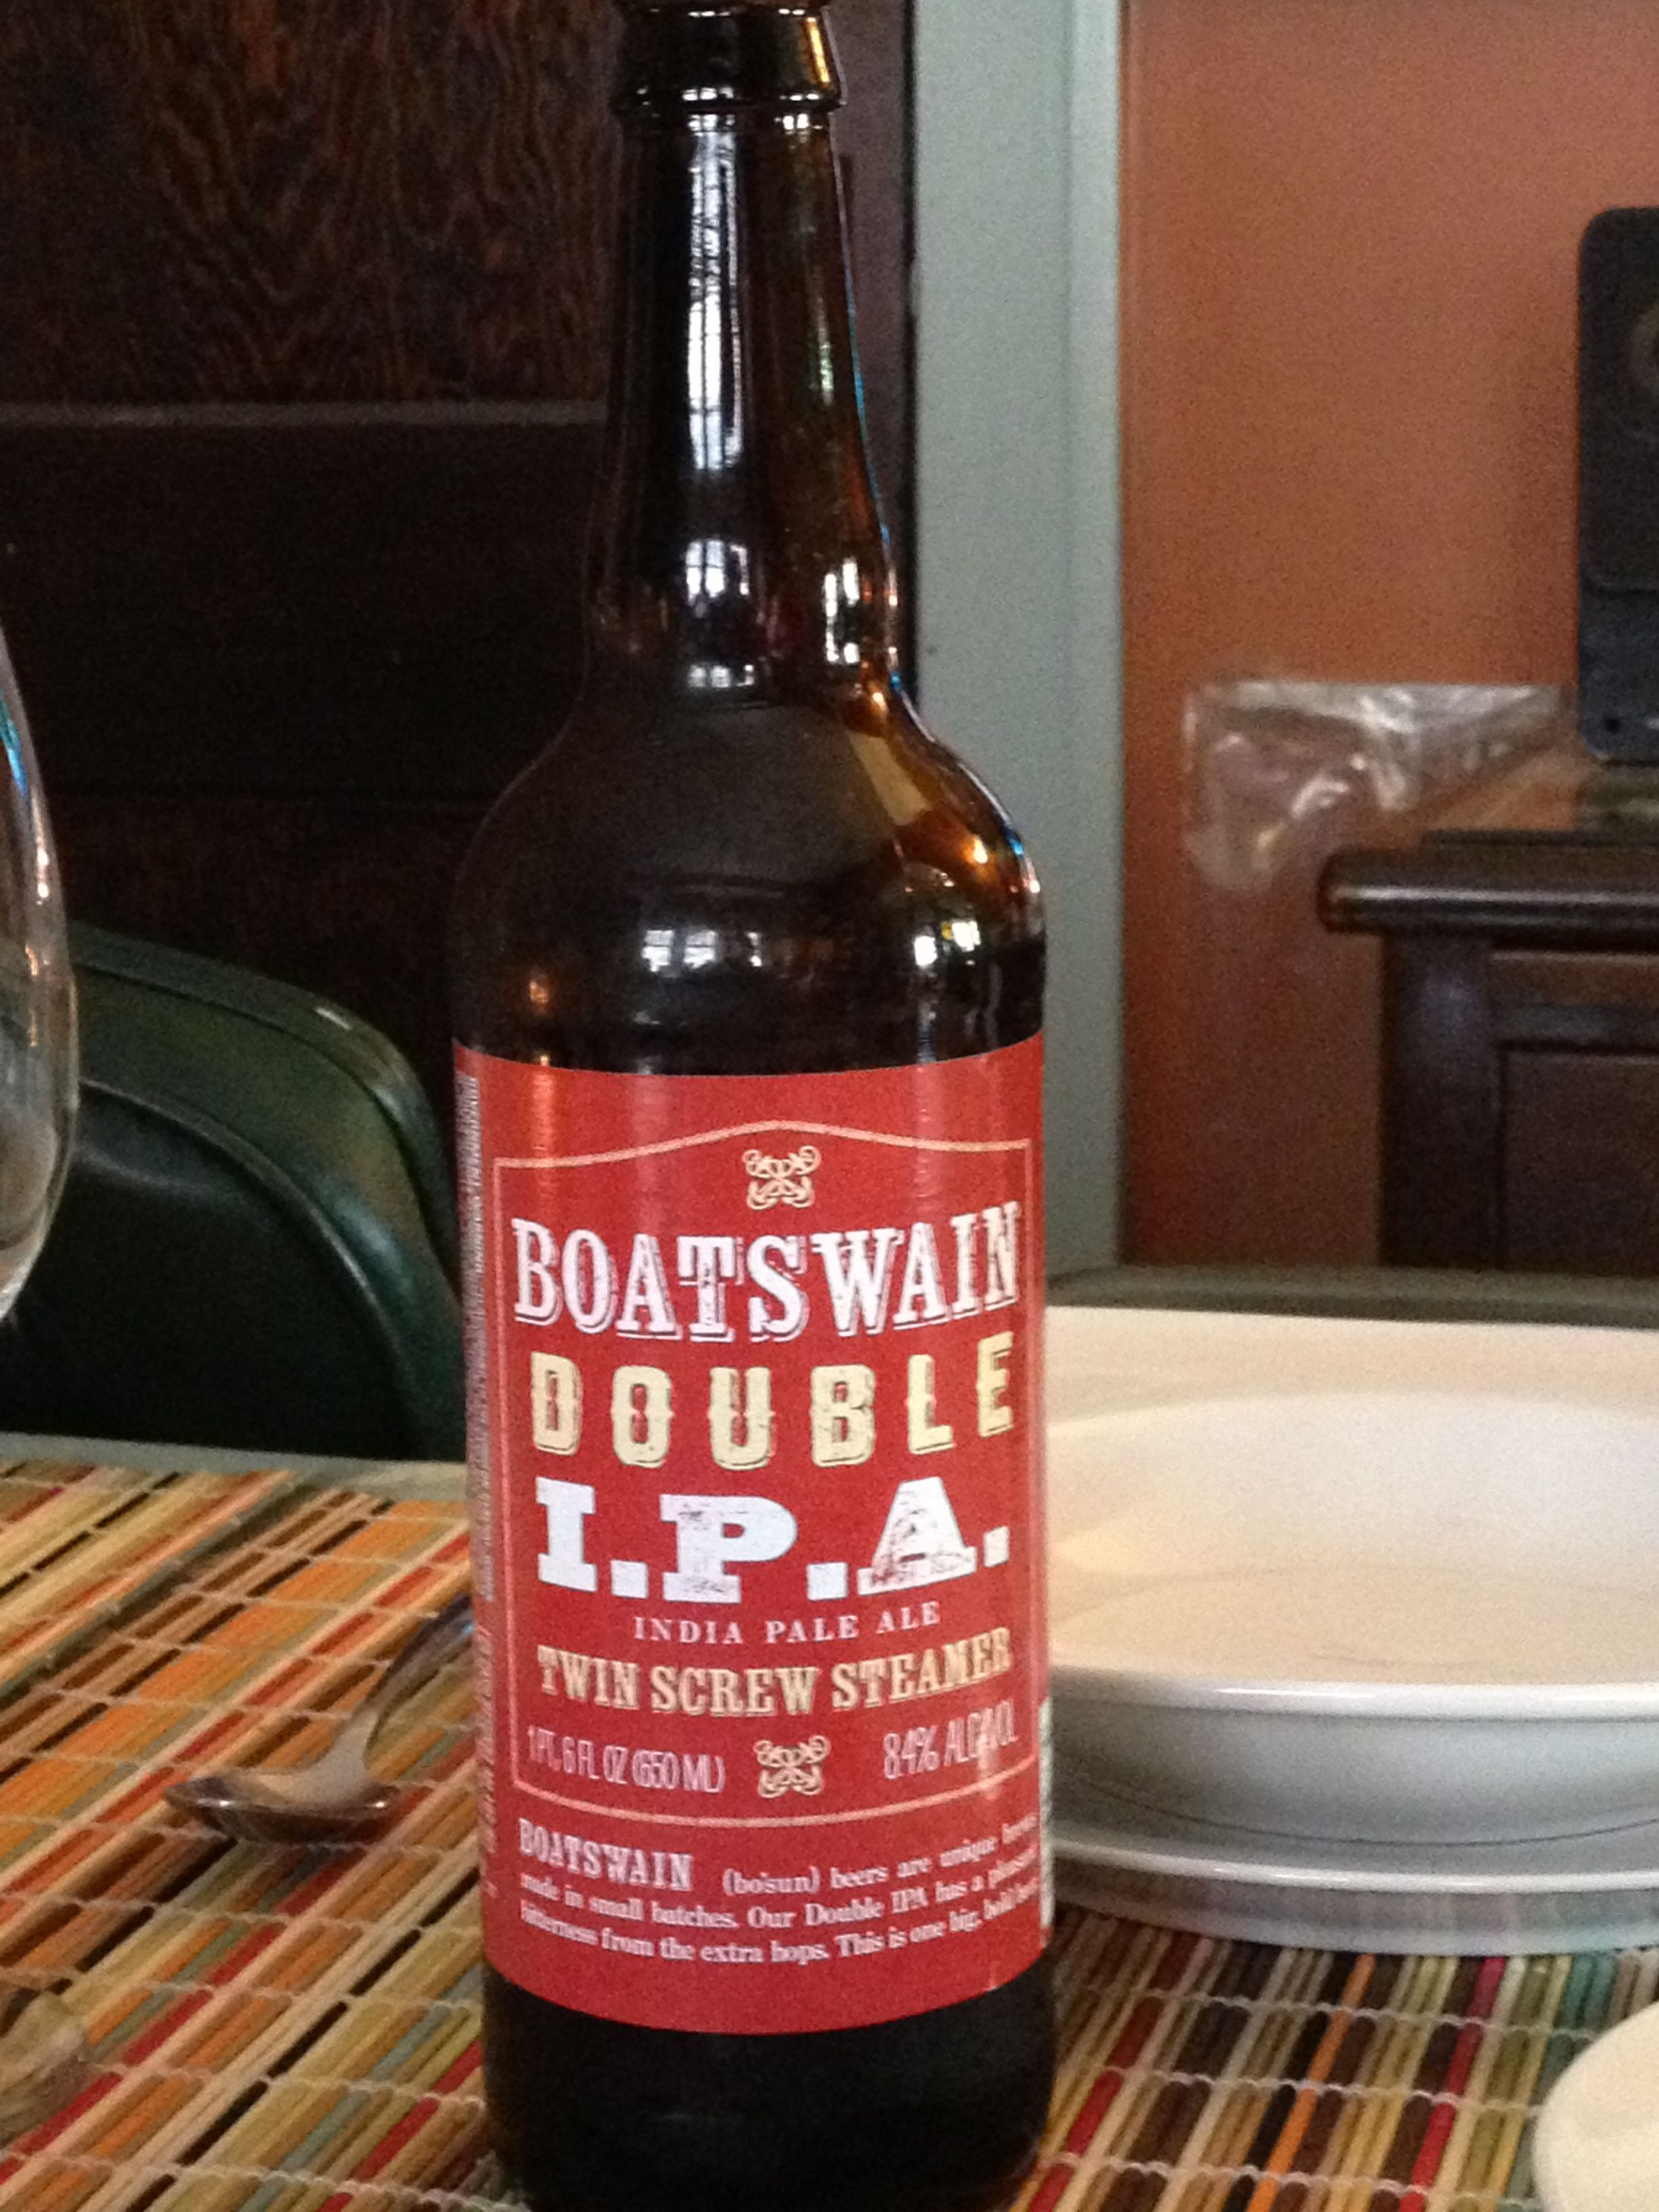 Boatswain Double Ipa From Trader Joes 8 4 Abv Brewed In Wisconsin Great Beer For The Price Homemade Beer Beer Craft Beer